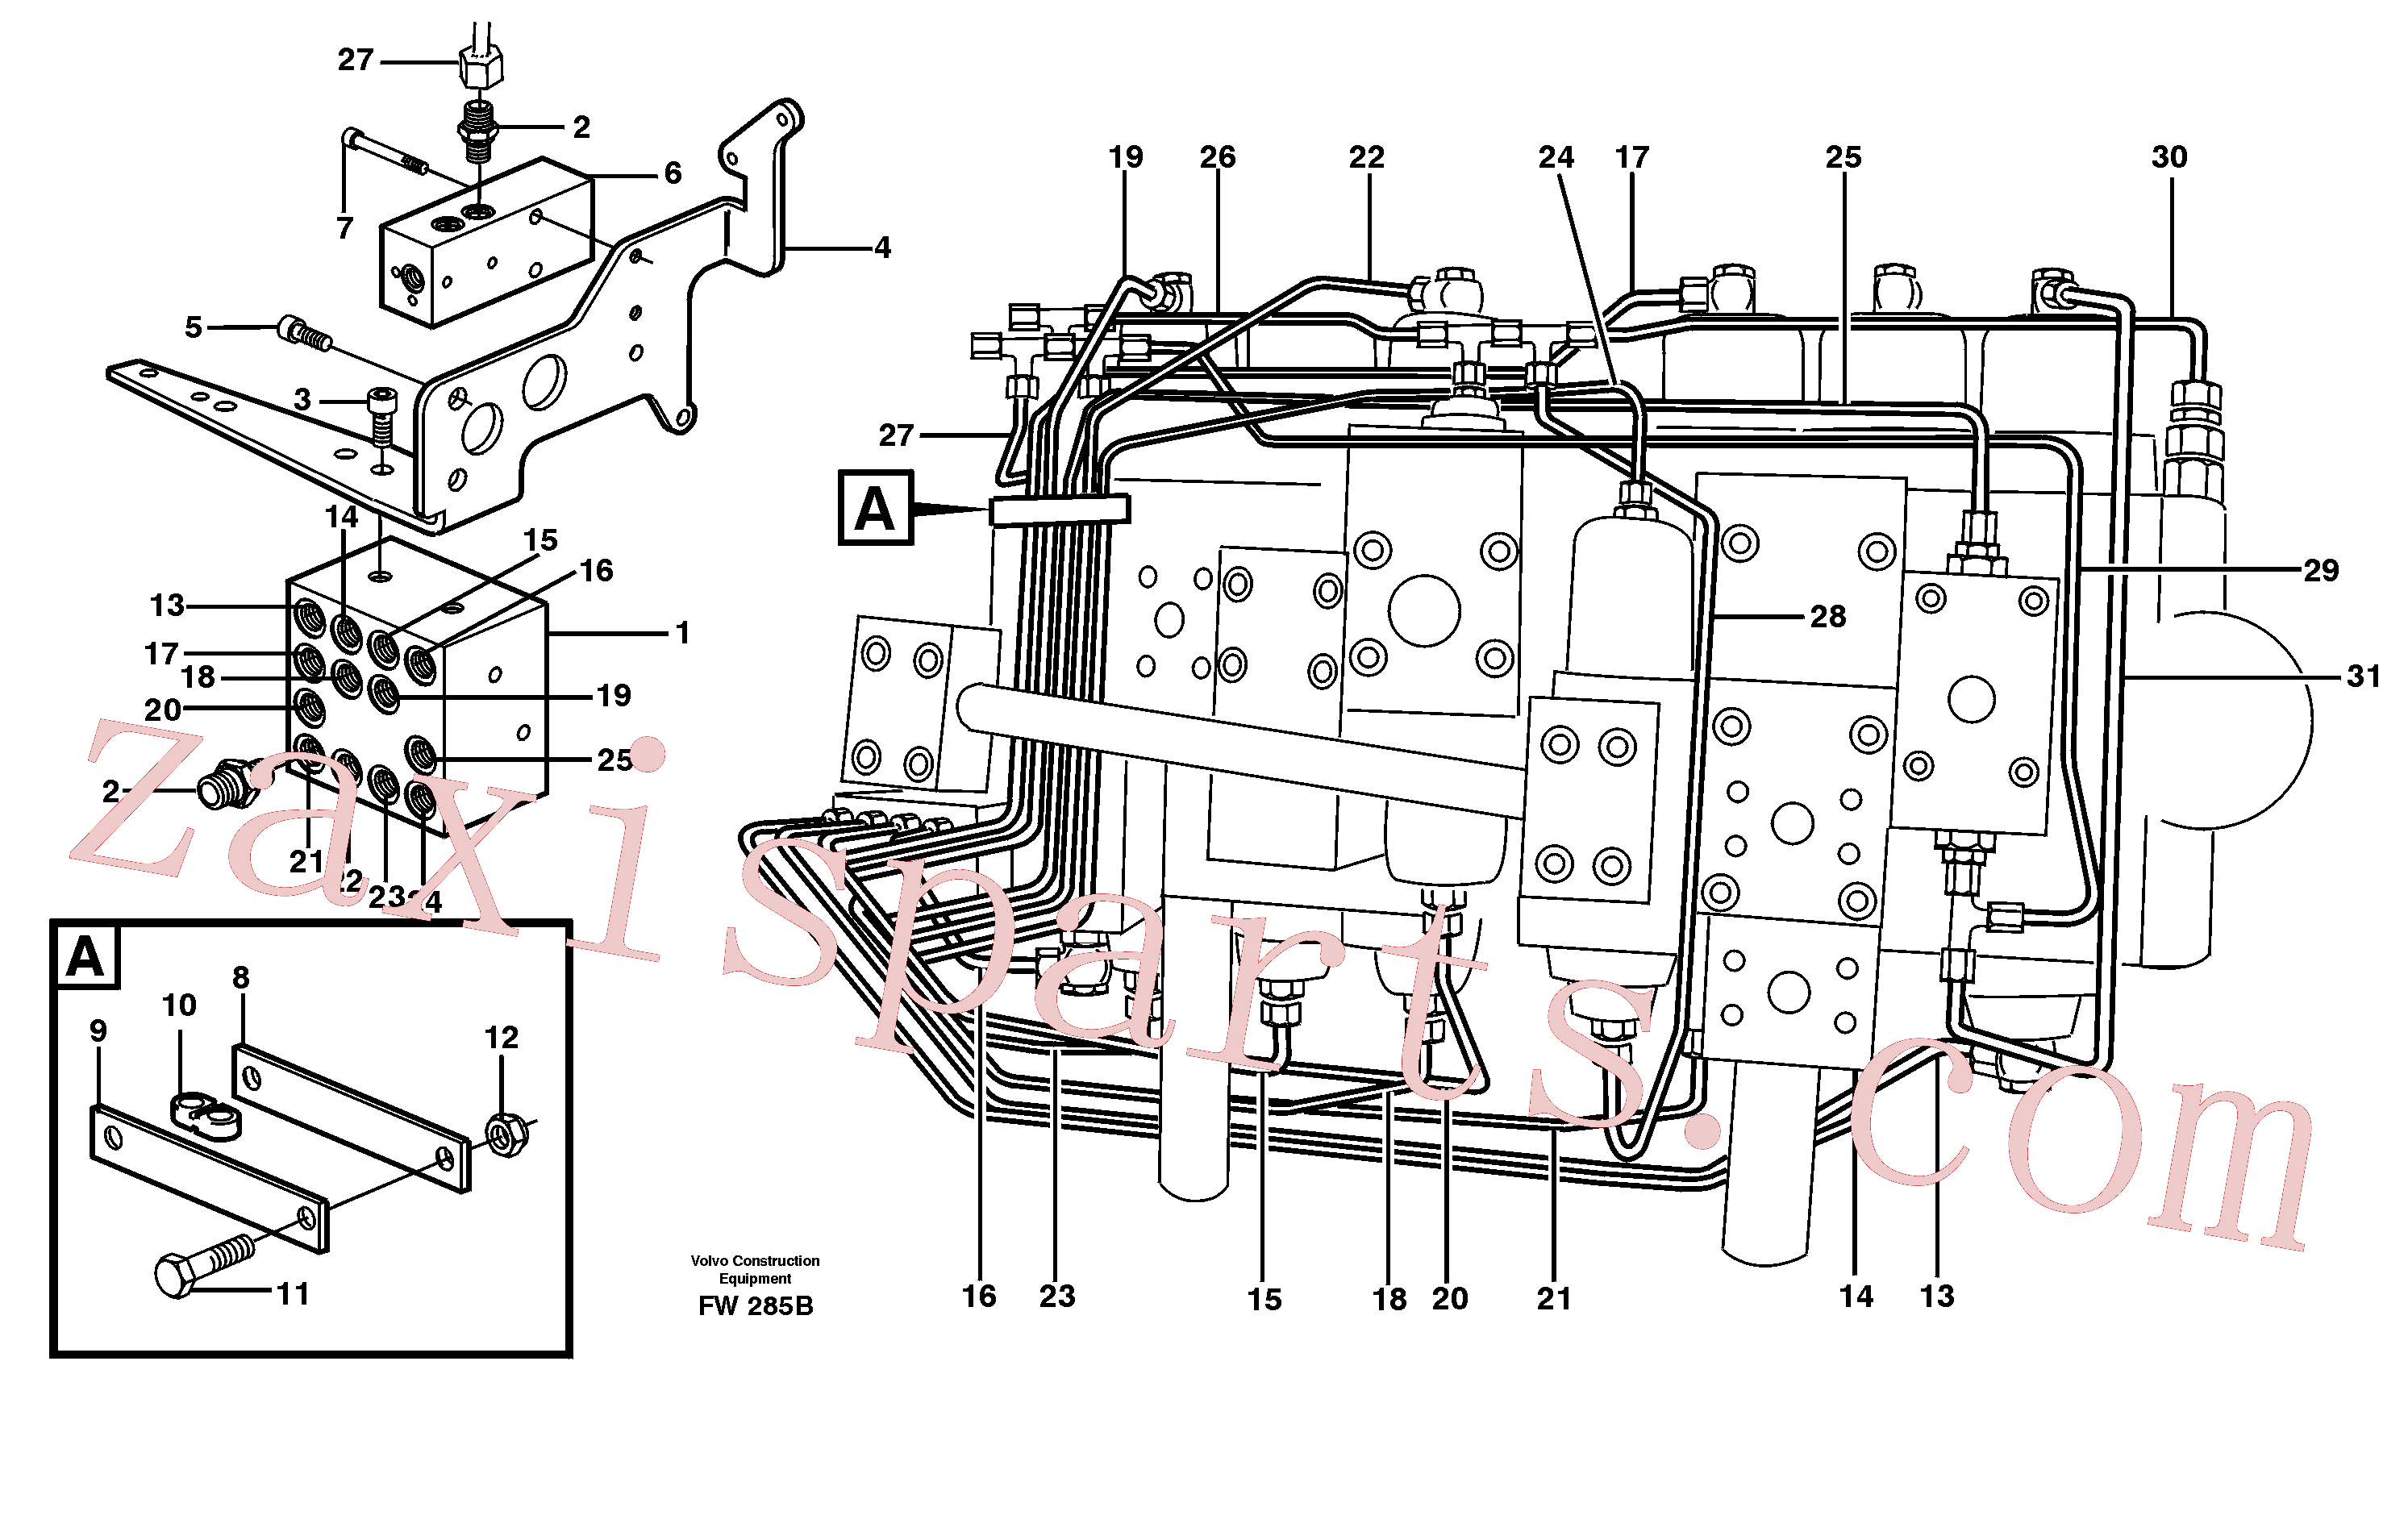 VOE14344626 for Volvo Main valve assembly, tubes connections(FW285B assembly)